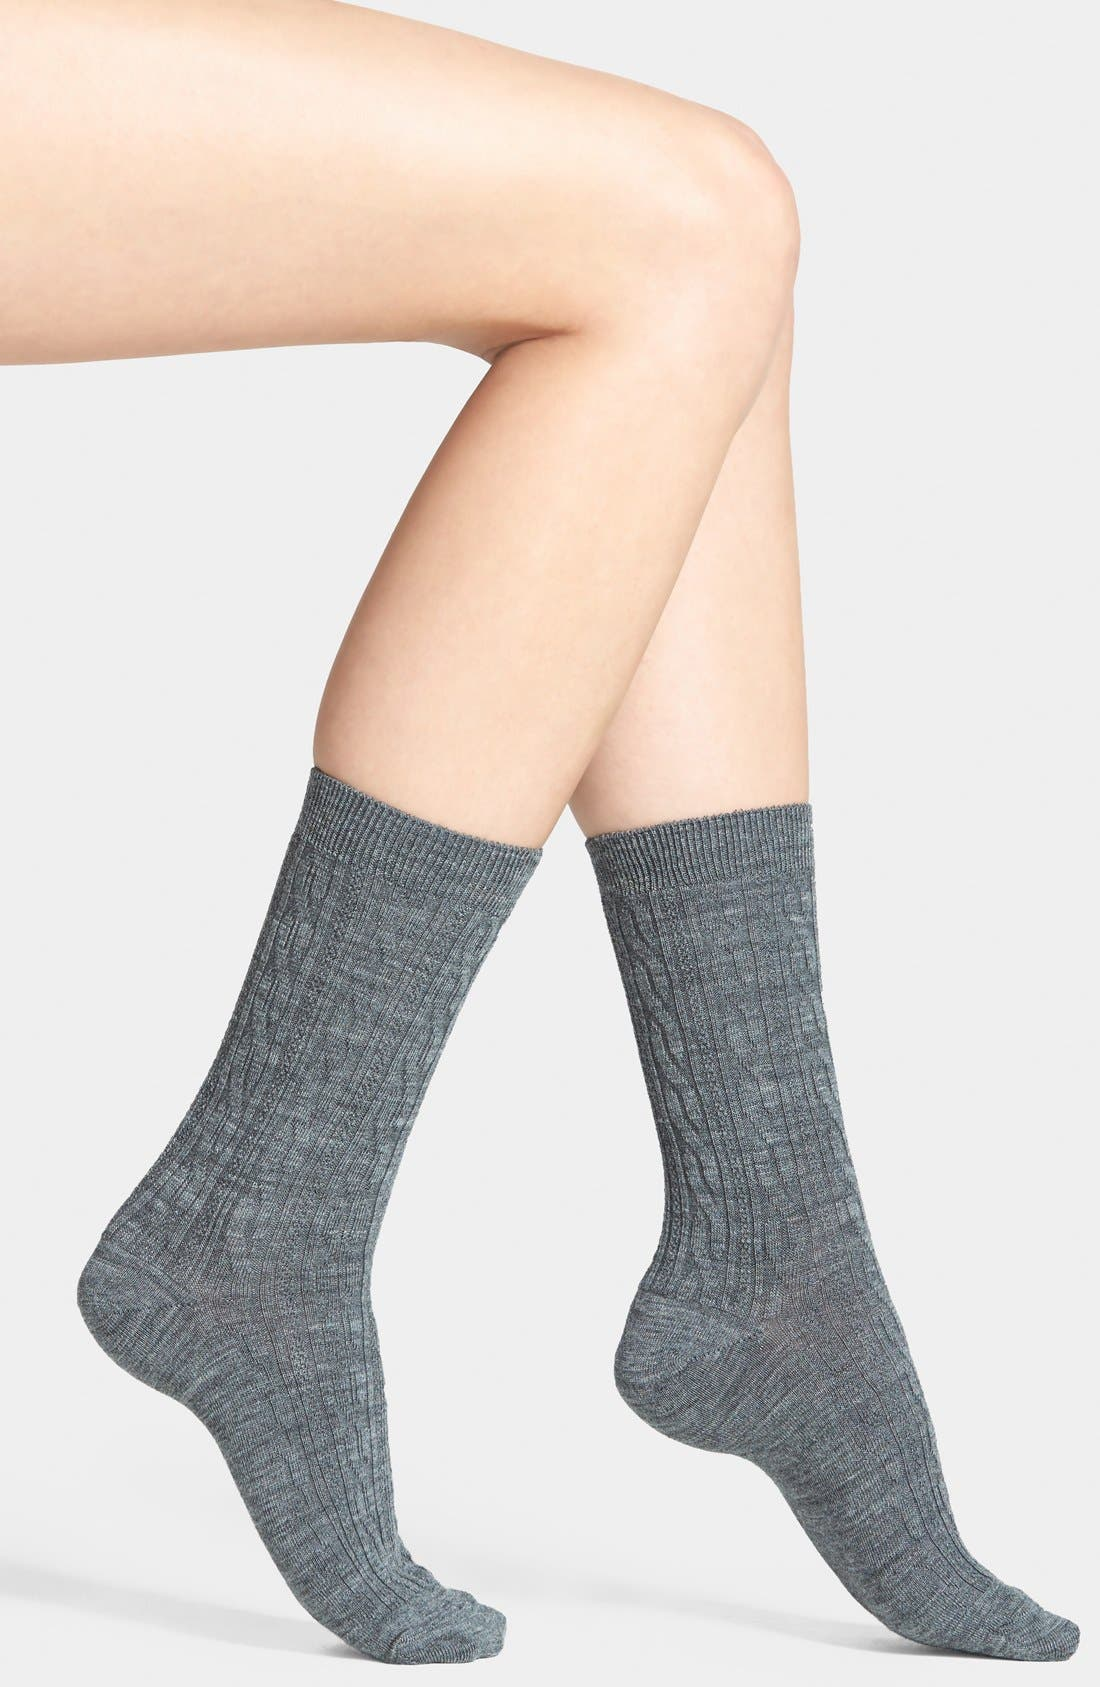 Smartwool 'Cable II' Crew Socks